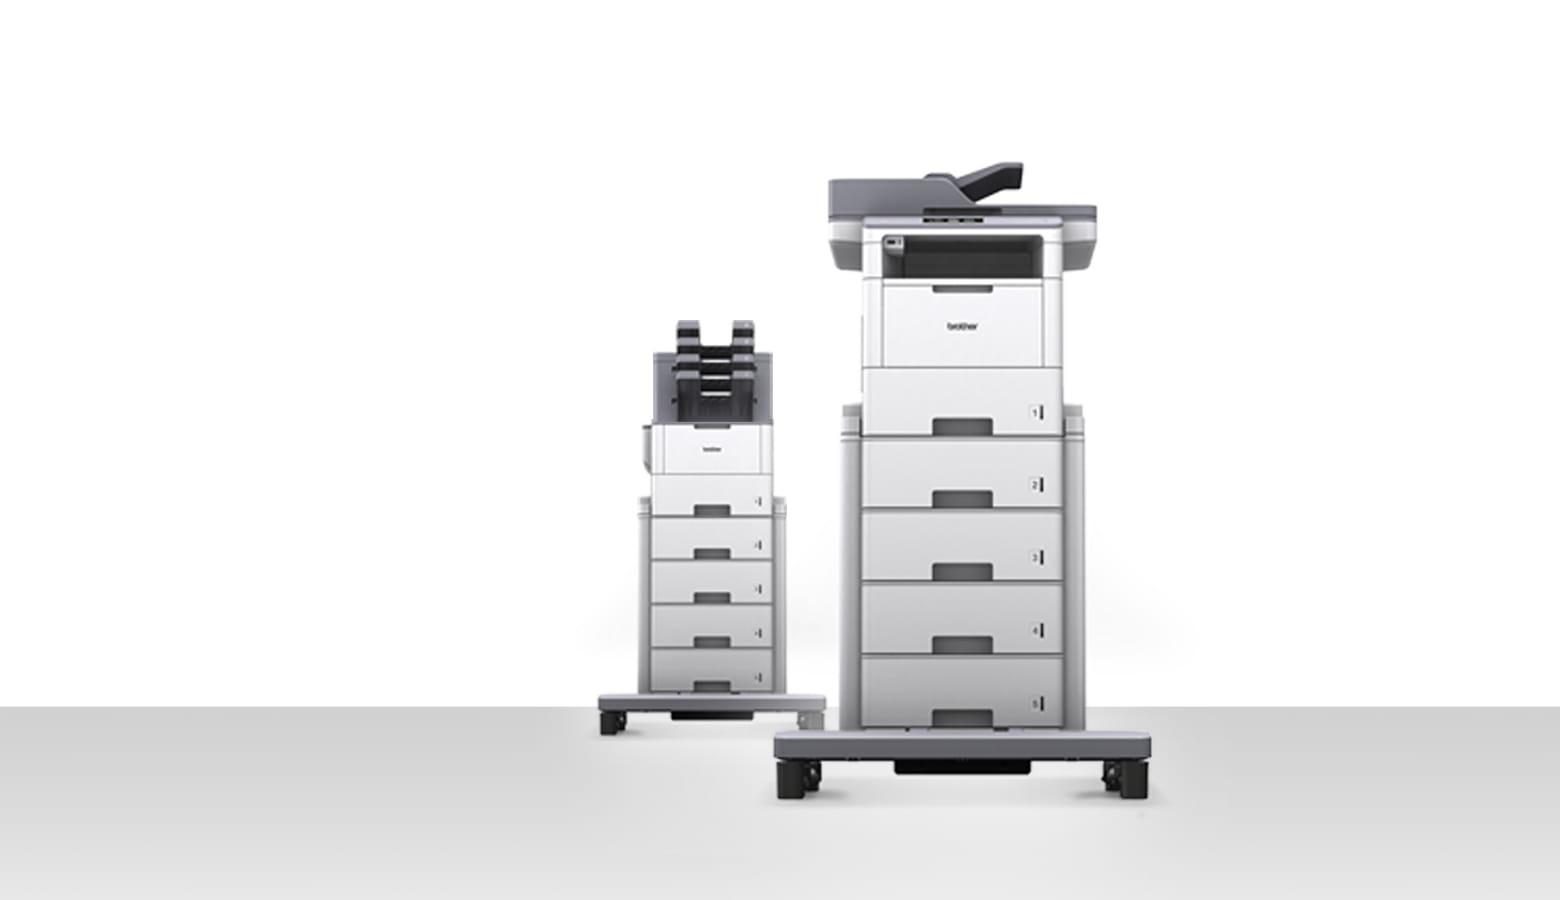 Brother's new enterprise mono laser printers for corporate businesses